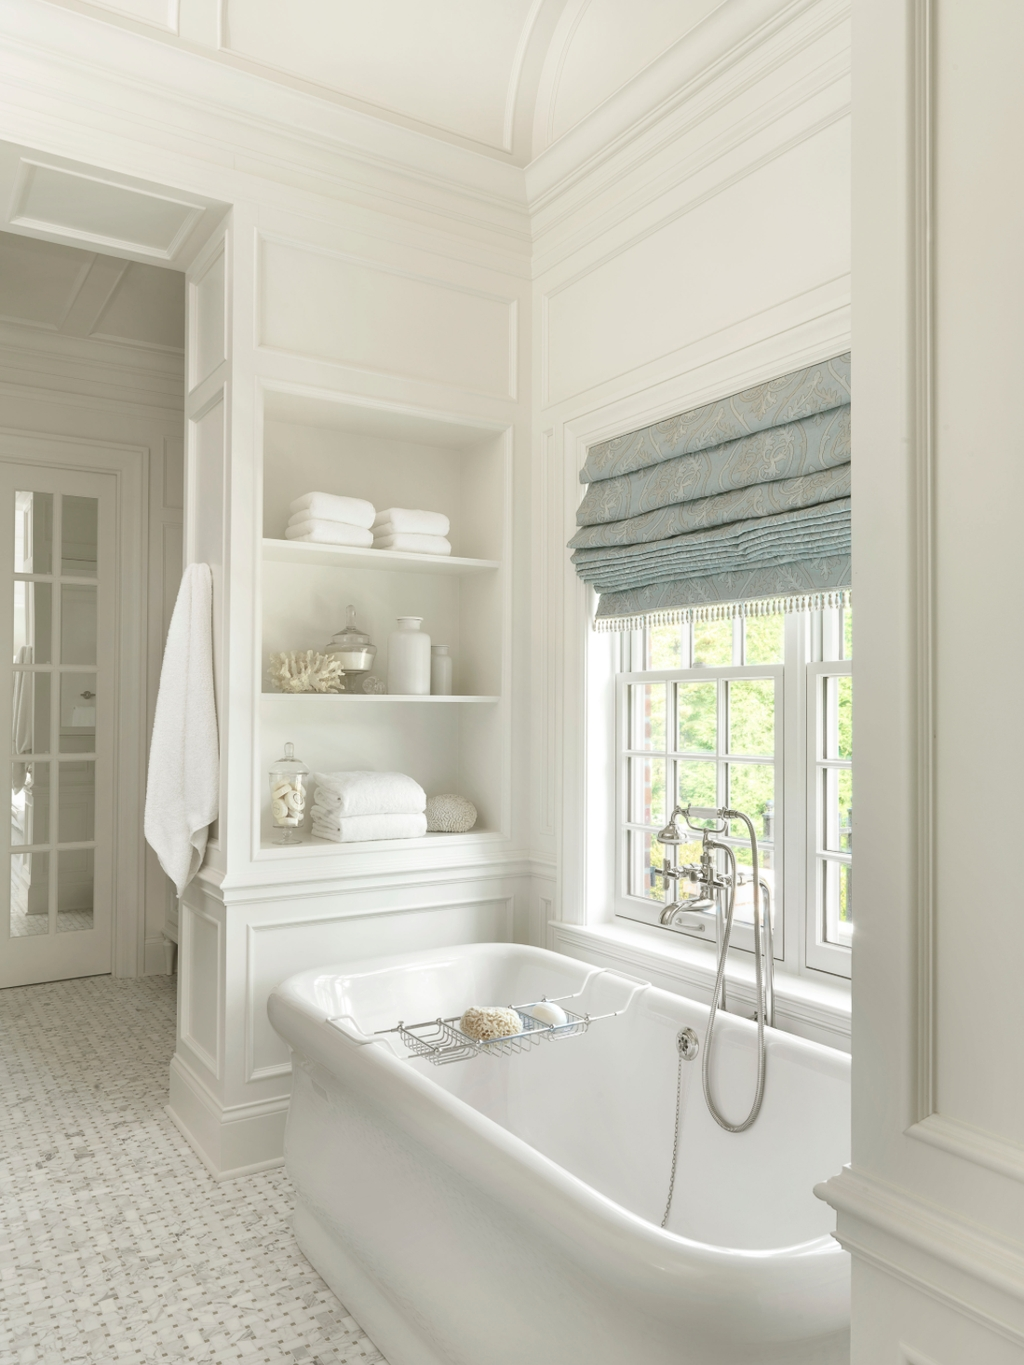 Captivating Bathtub Designs Ideas You Must See04